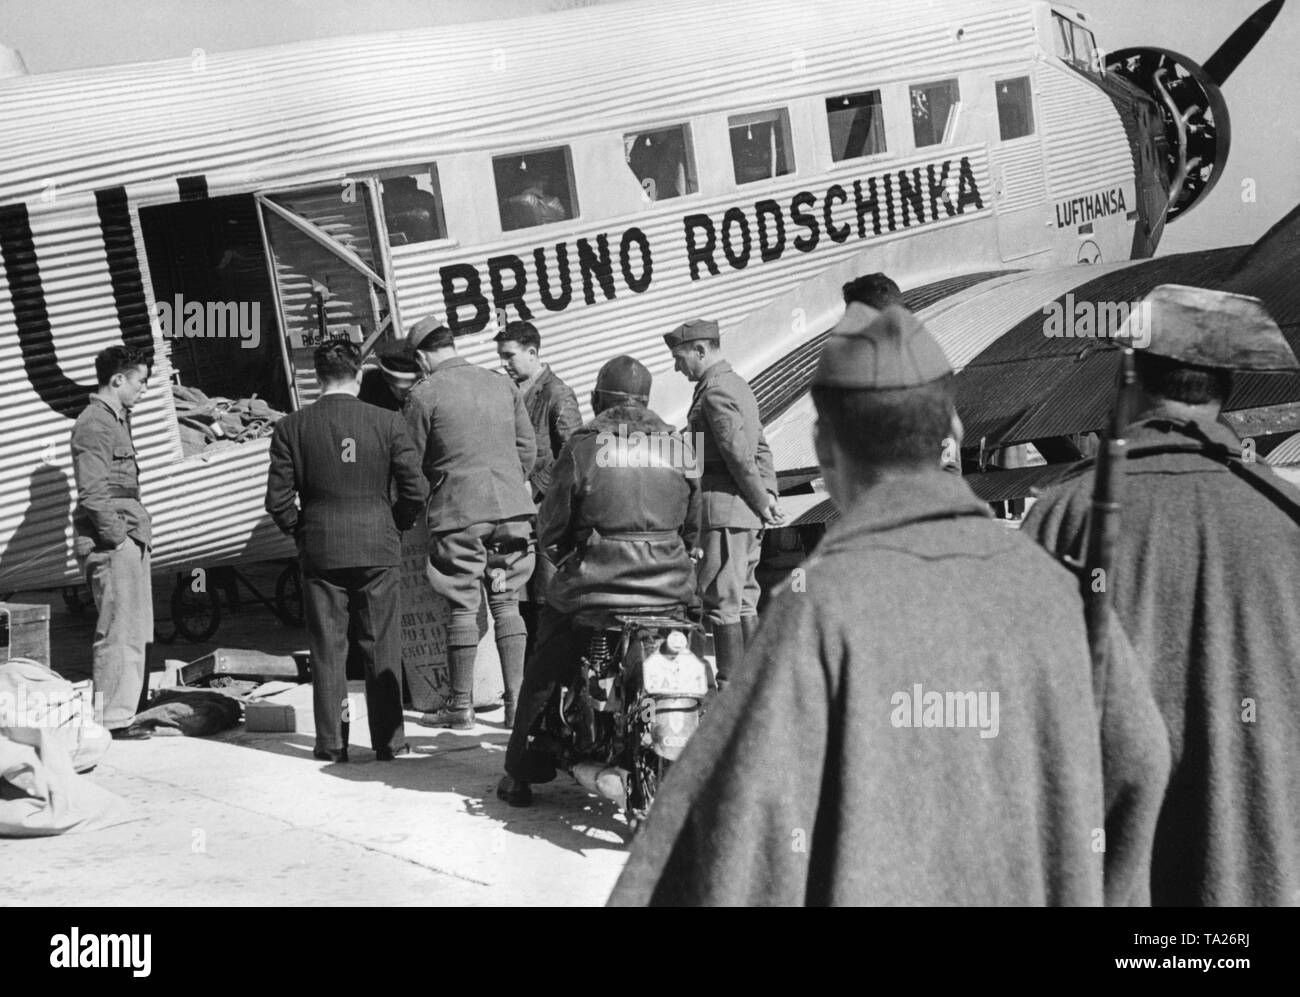 Photo of a German Junkers Ju 52 of the Deutsche Lufthansa AG 1939 at Salamanca airport, Castile and Leon, Spain. The aircraft bears the name 'Bruno Rodschinka '. It is just being loaded. In the foreground, two policemen of the Guardia Civil. - Stock Image